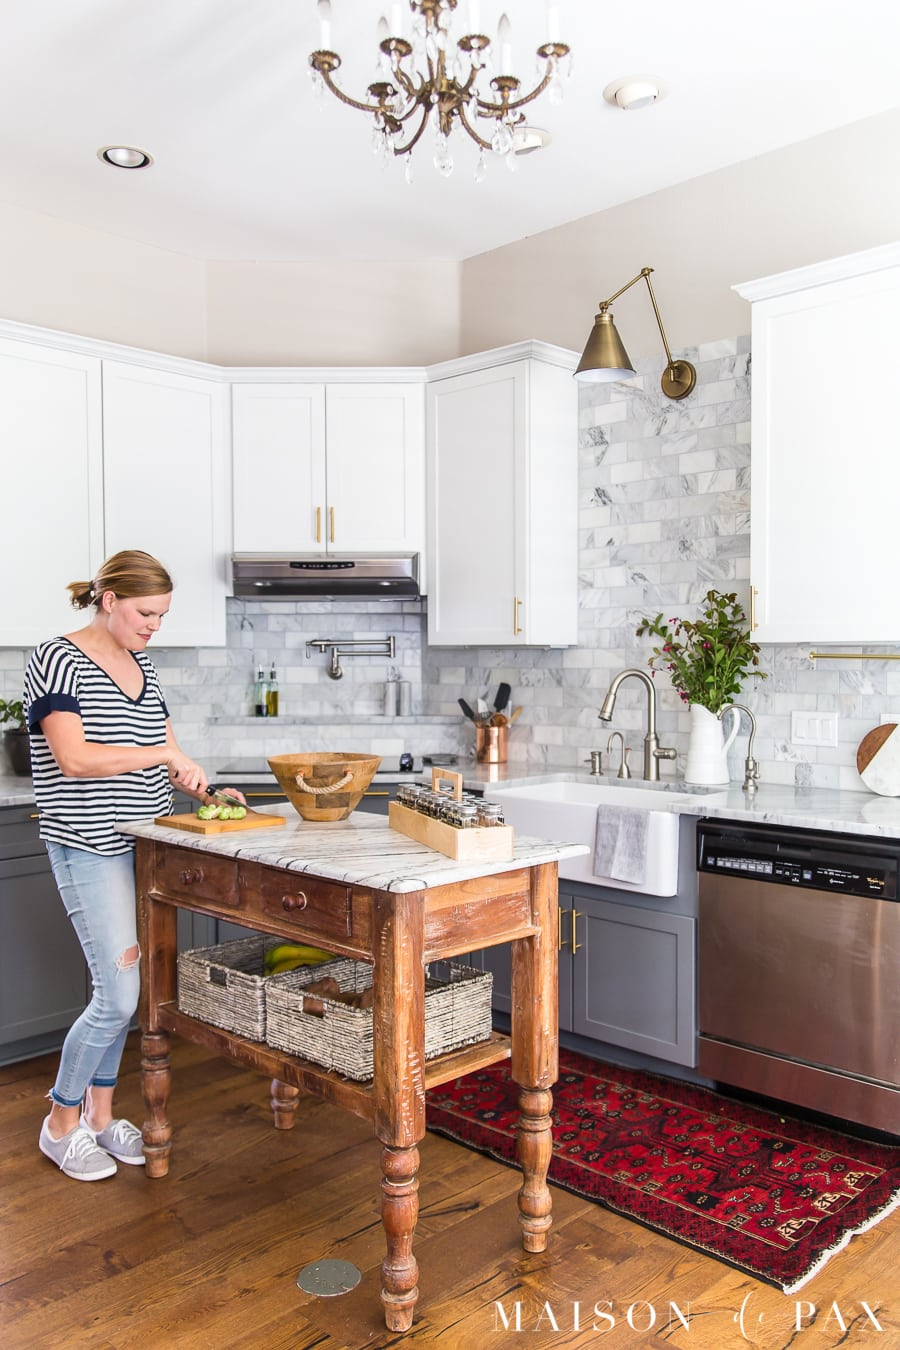 kitchen organizing ideas: follow these 5 tips for a really functional and beautiful kitchen! #kitchenorganization #organizing #kitchendesign